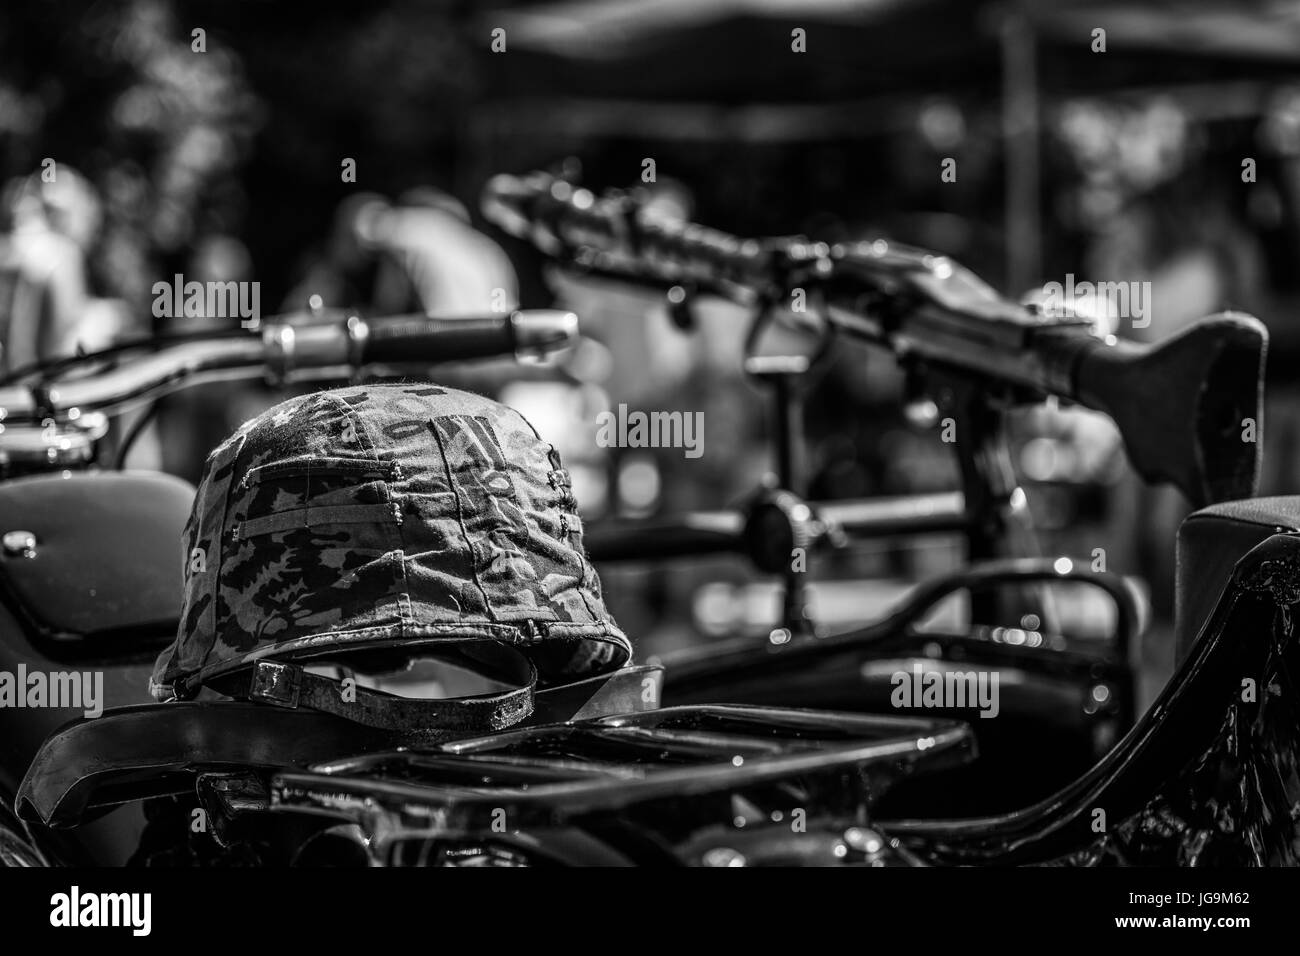 Military cap lying on BMW R71 old motorcycle after renovation with a rifle (toy) in the background. Black and white. - Stock Image